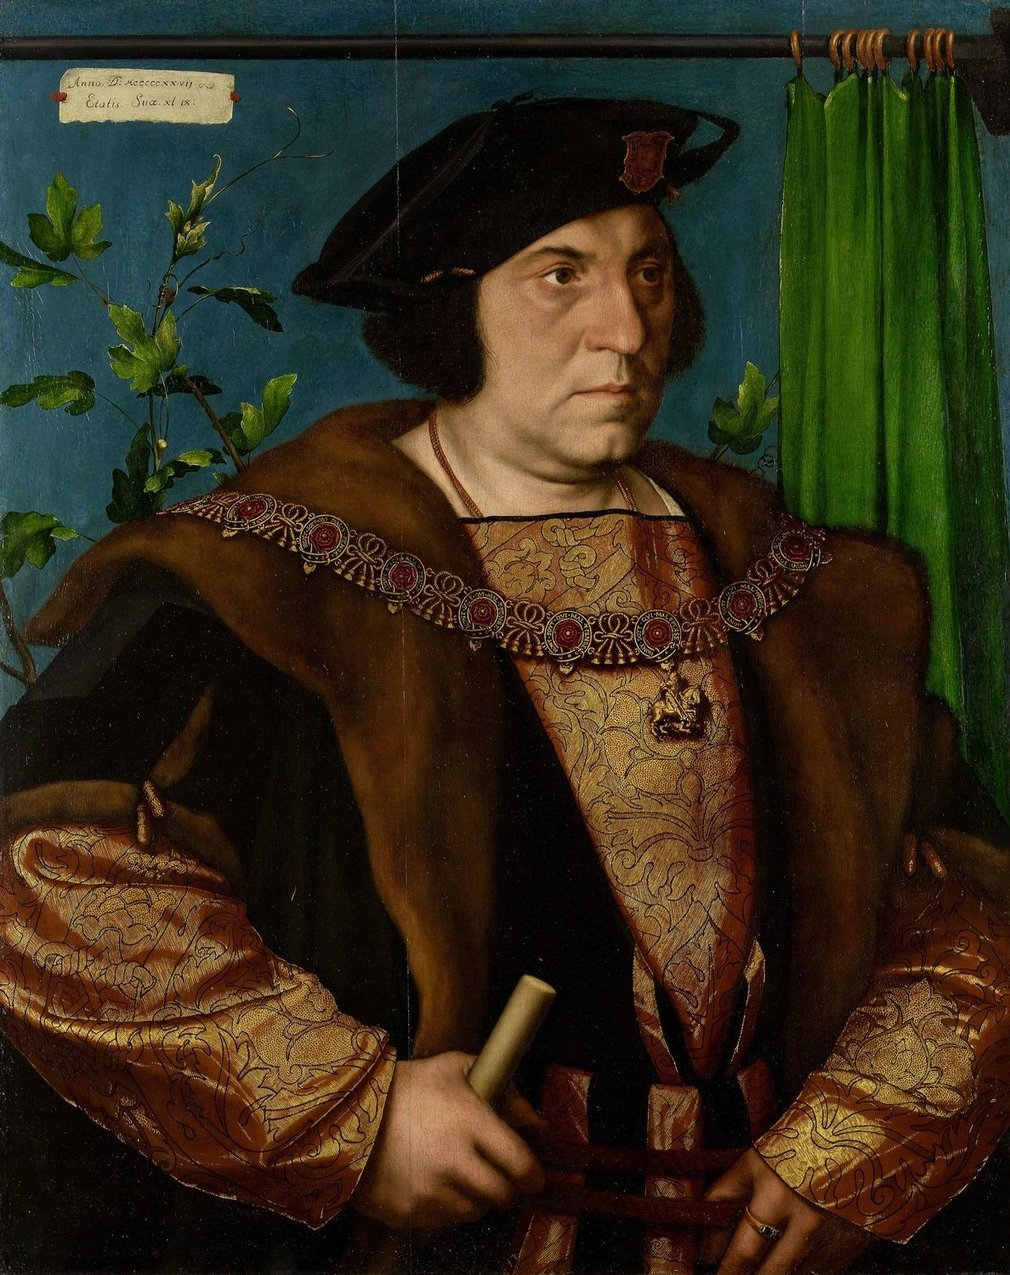 Hans Holbein the Younger was born in Augsburg where he was trained by his father, Hans Holbein the Elder. He became a member of the painter's guild at Basel in 1519. He visited France in 1524 and first visited London in 1526-8. He returned to England in 1